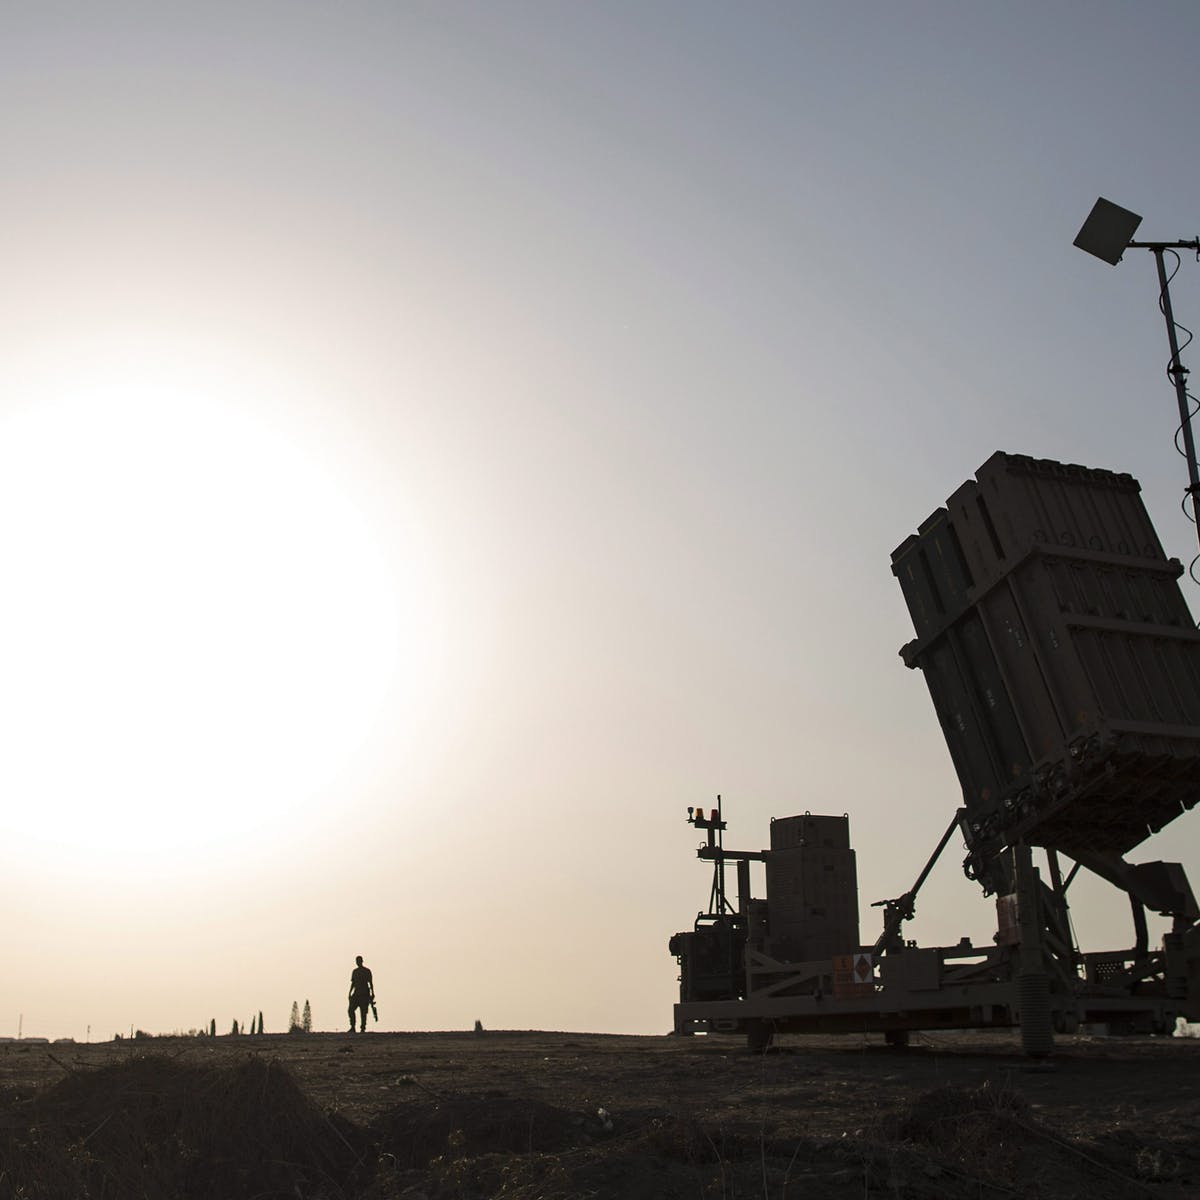 As missiles fly, a look at Israel's Iron Dome interceptor